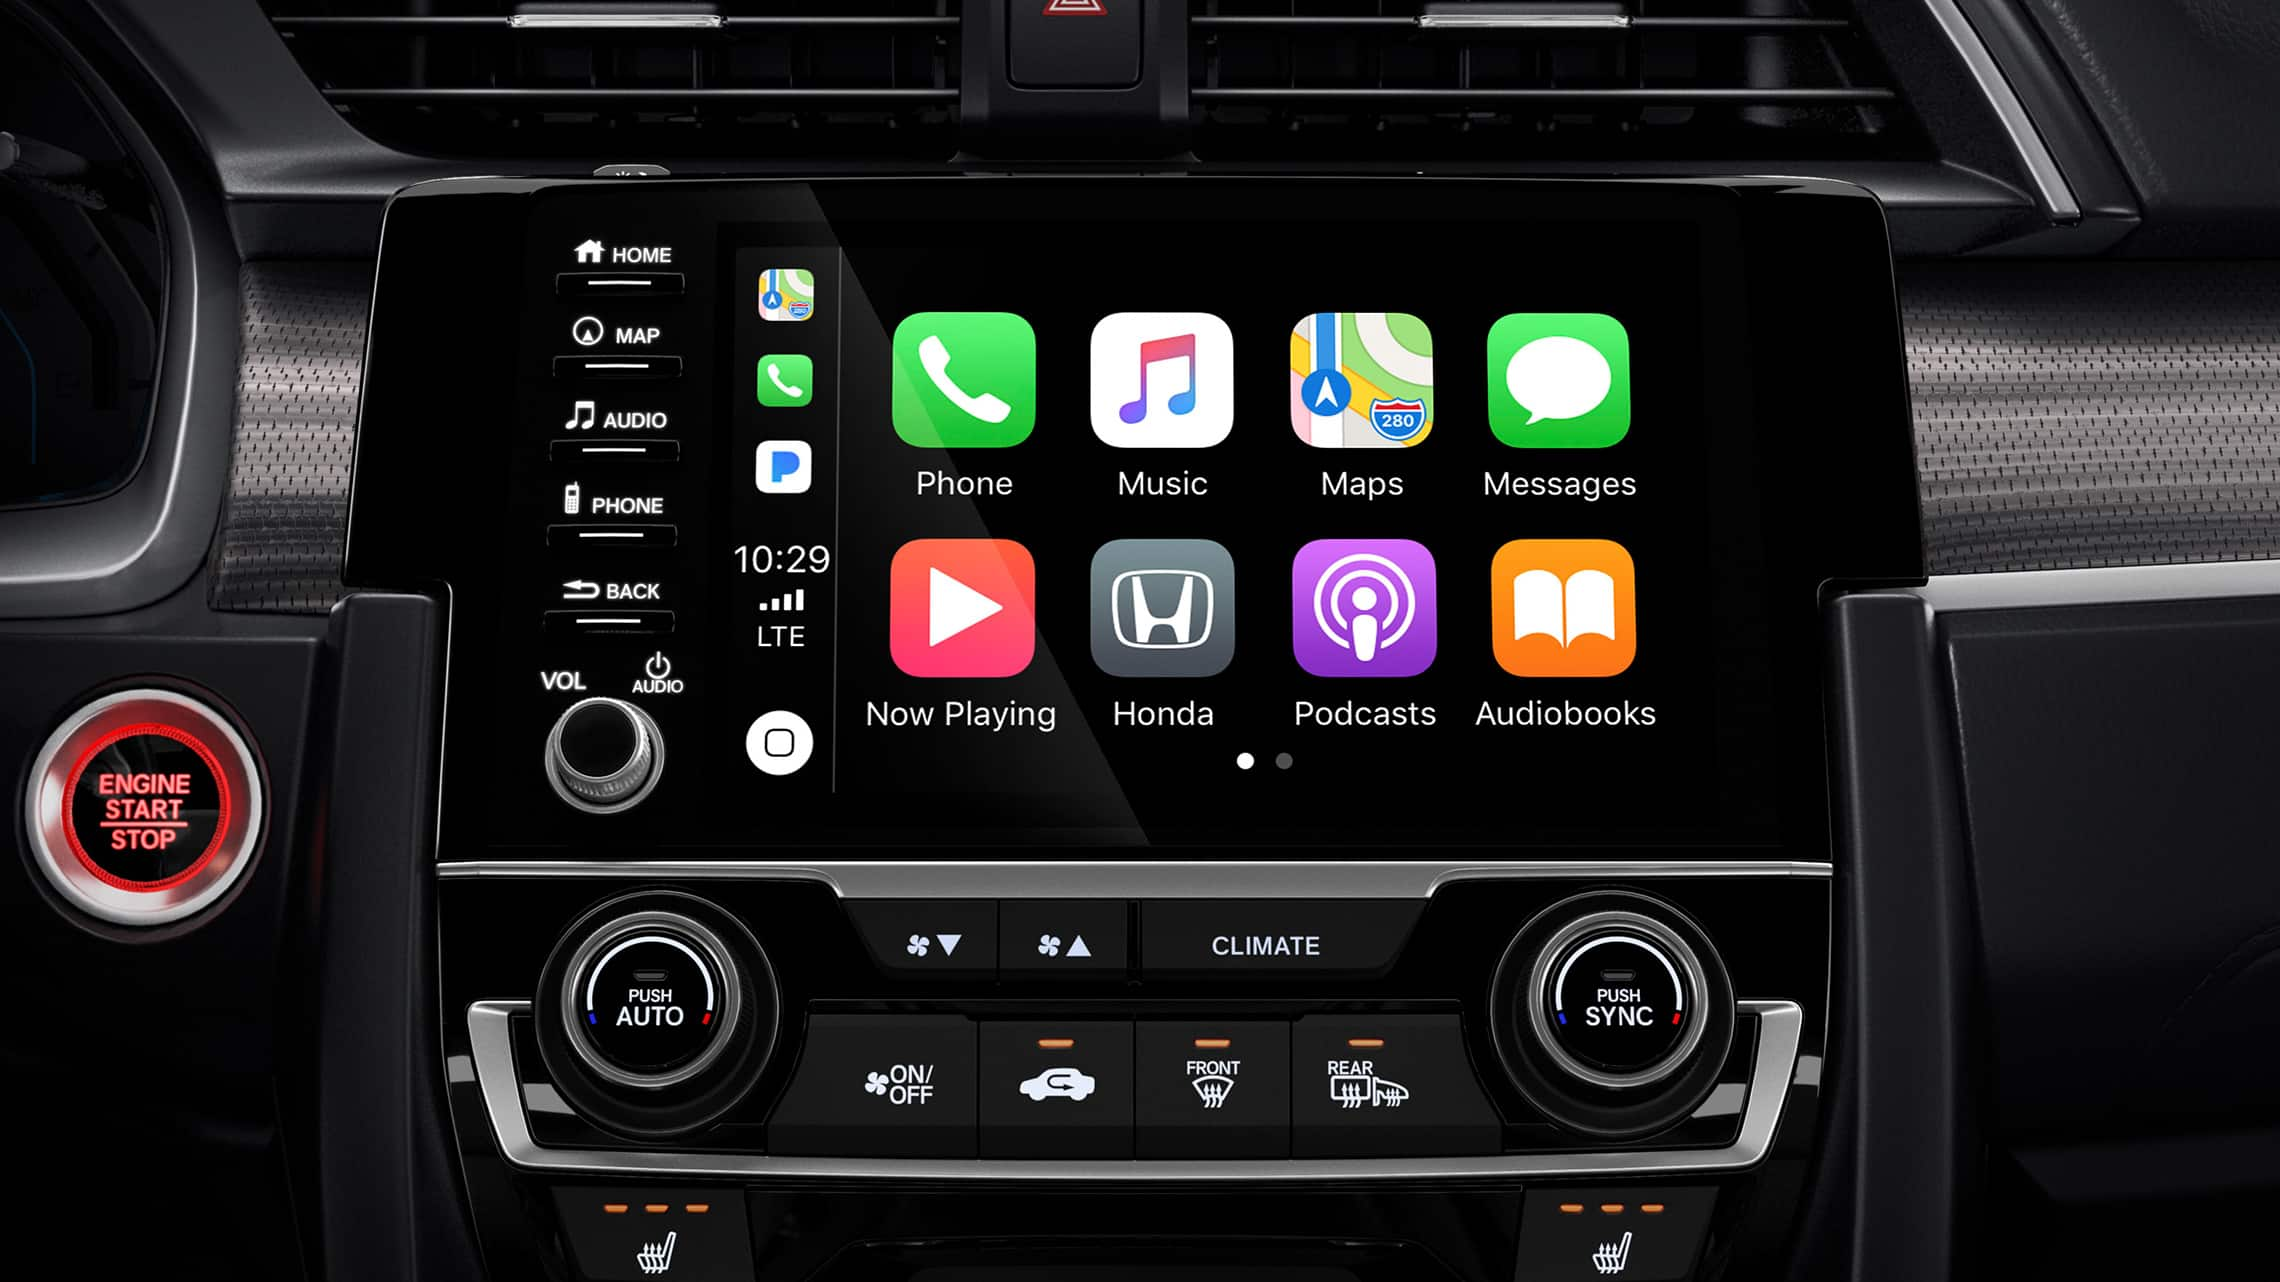 Apple CarPlay® integration detail on Display Audio touchscreen in the 2020 Honda Civic Coupe.